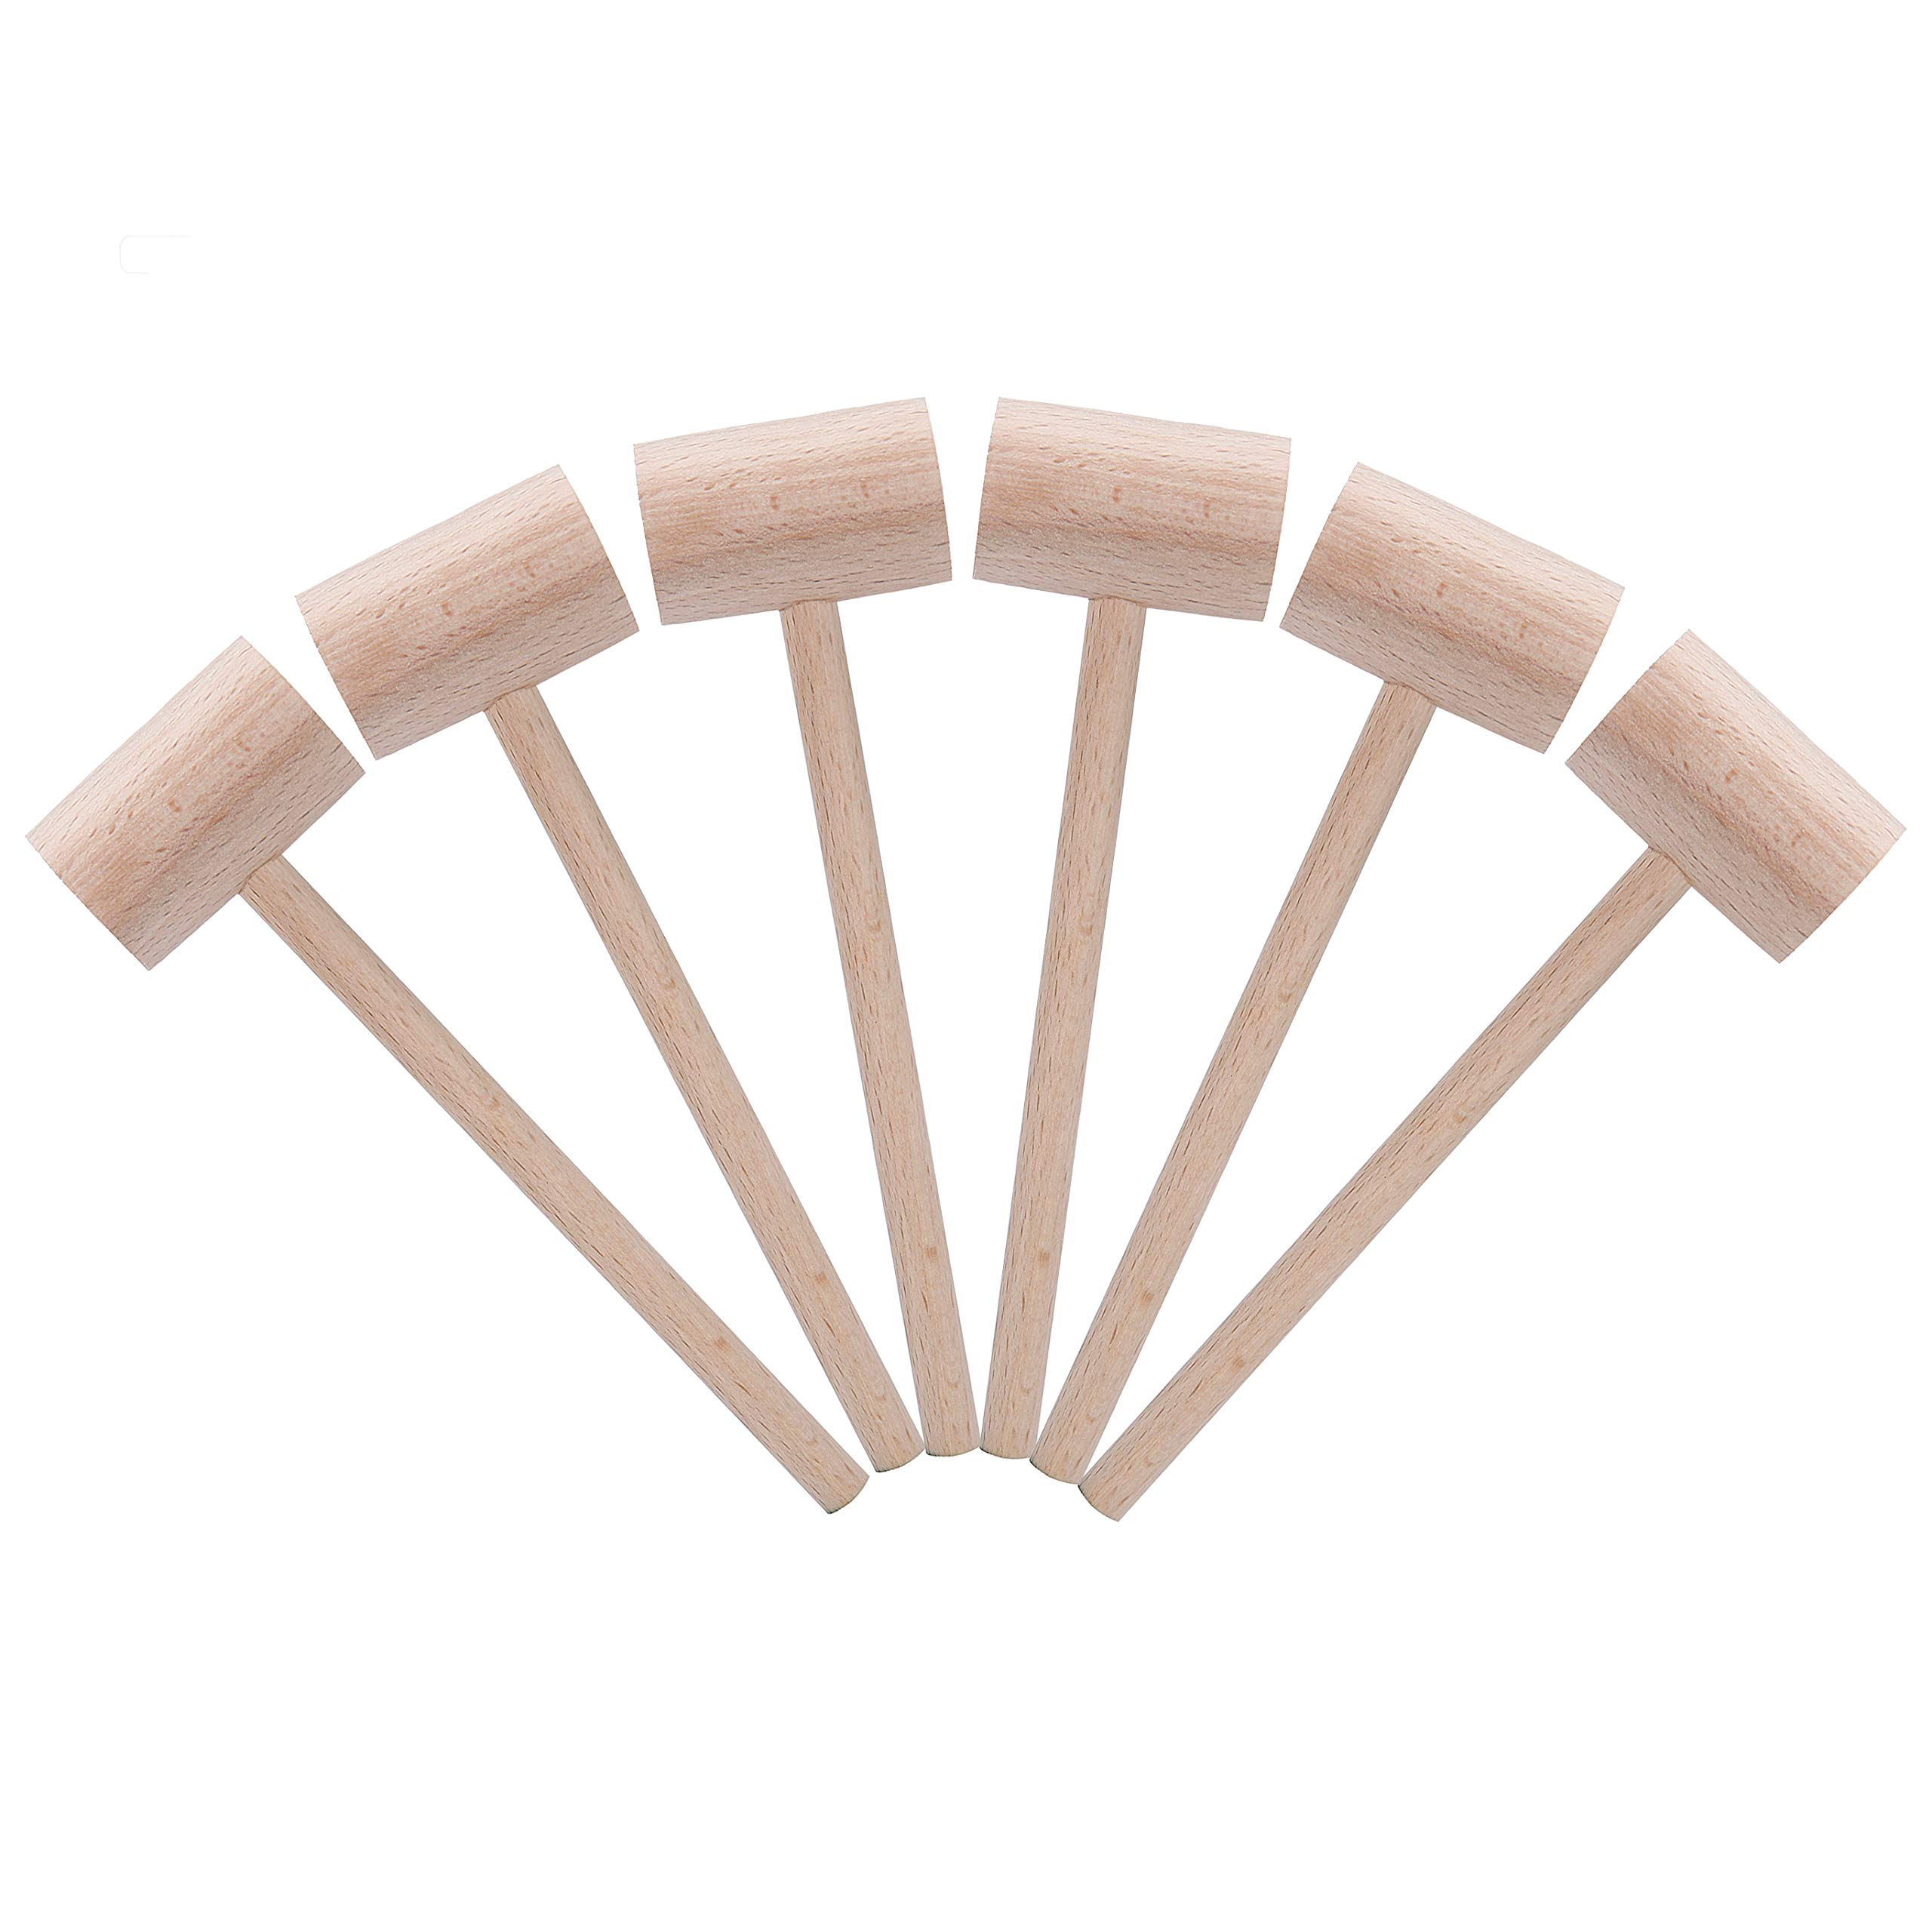 6 Pack Wooden Crab Mallets Seafood Lobster Shellfish Cracker Natural Hardwood Hammer by Mihey